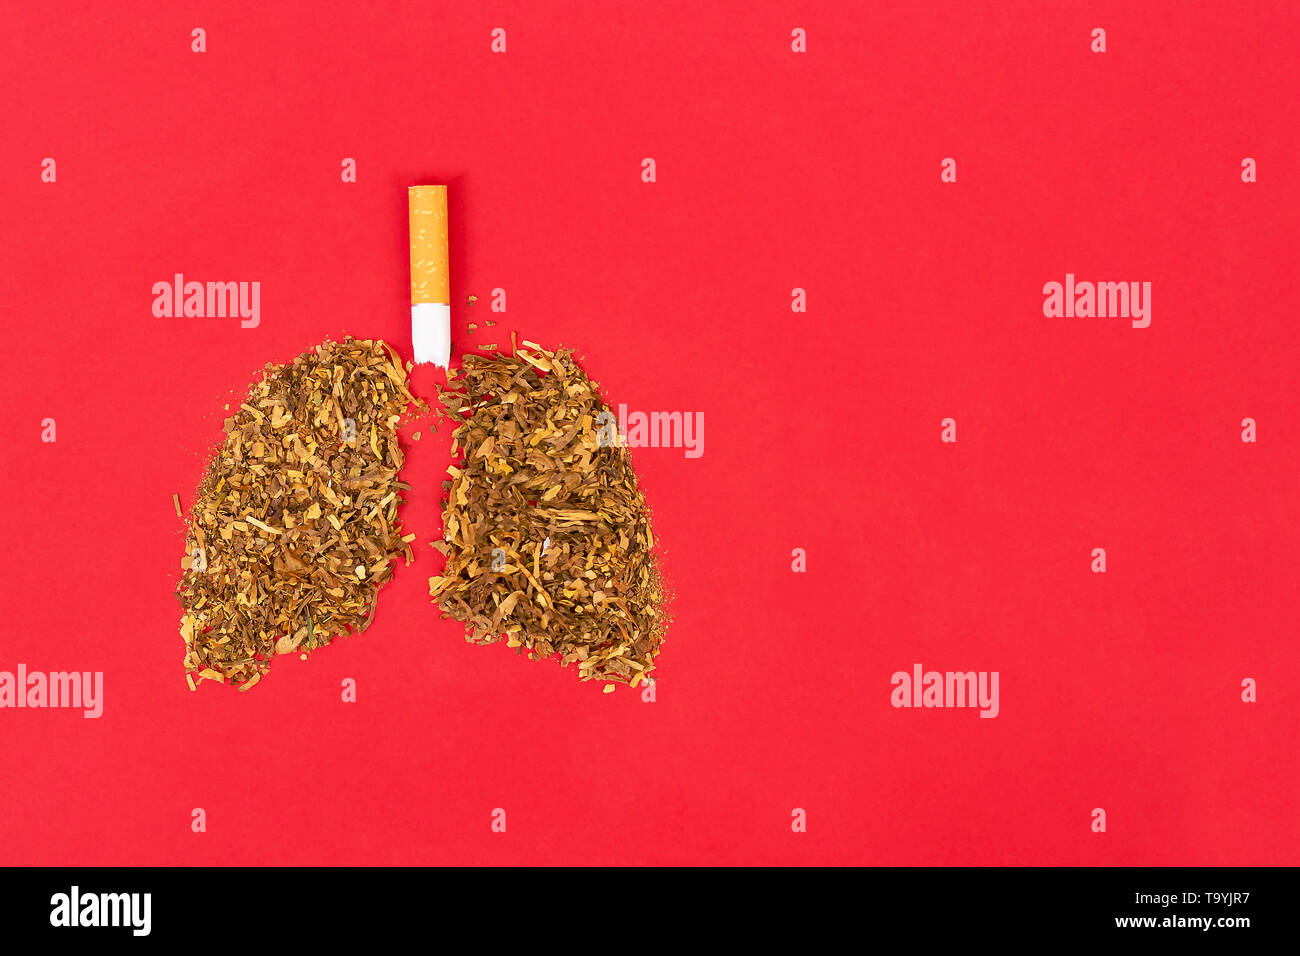 healthy lung and smokers